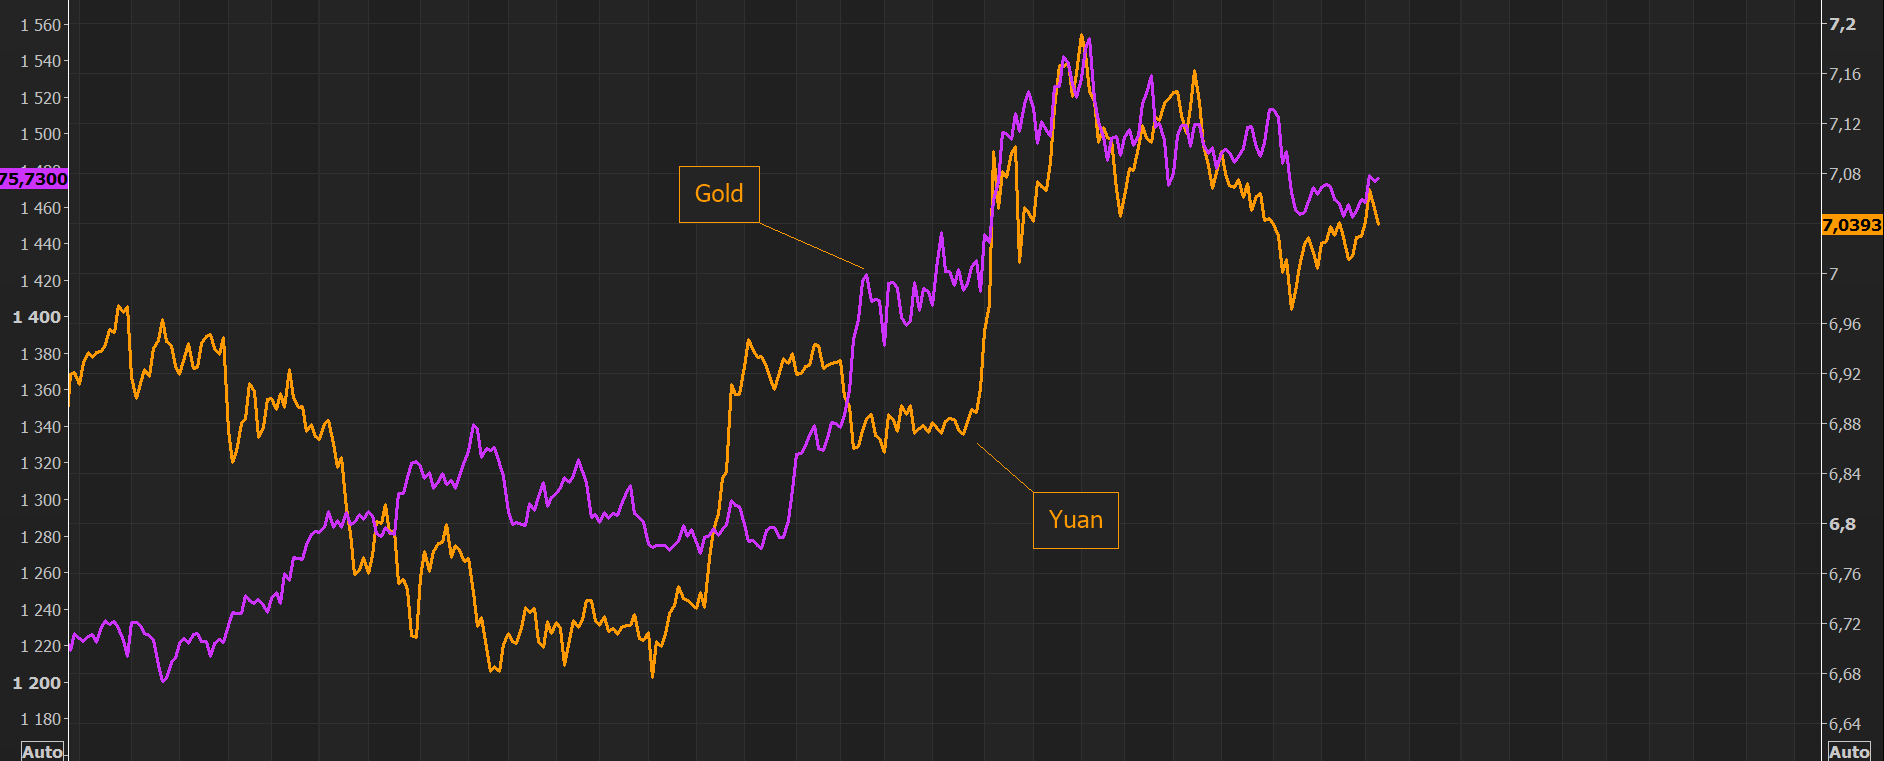 Gold and the Yuan - Gold loves weaker Yuan, but the Yuan is stronger over past sessions....